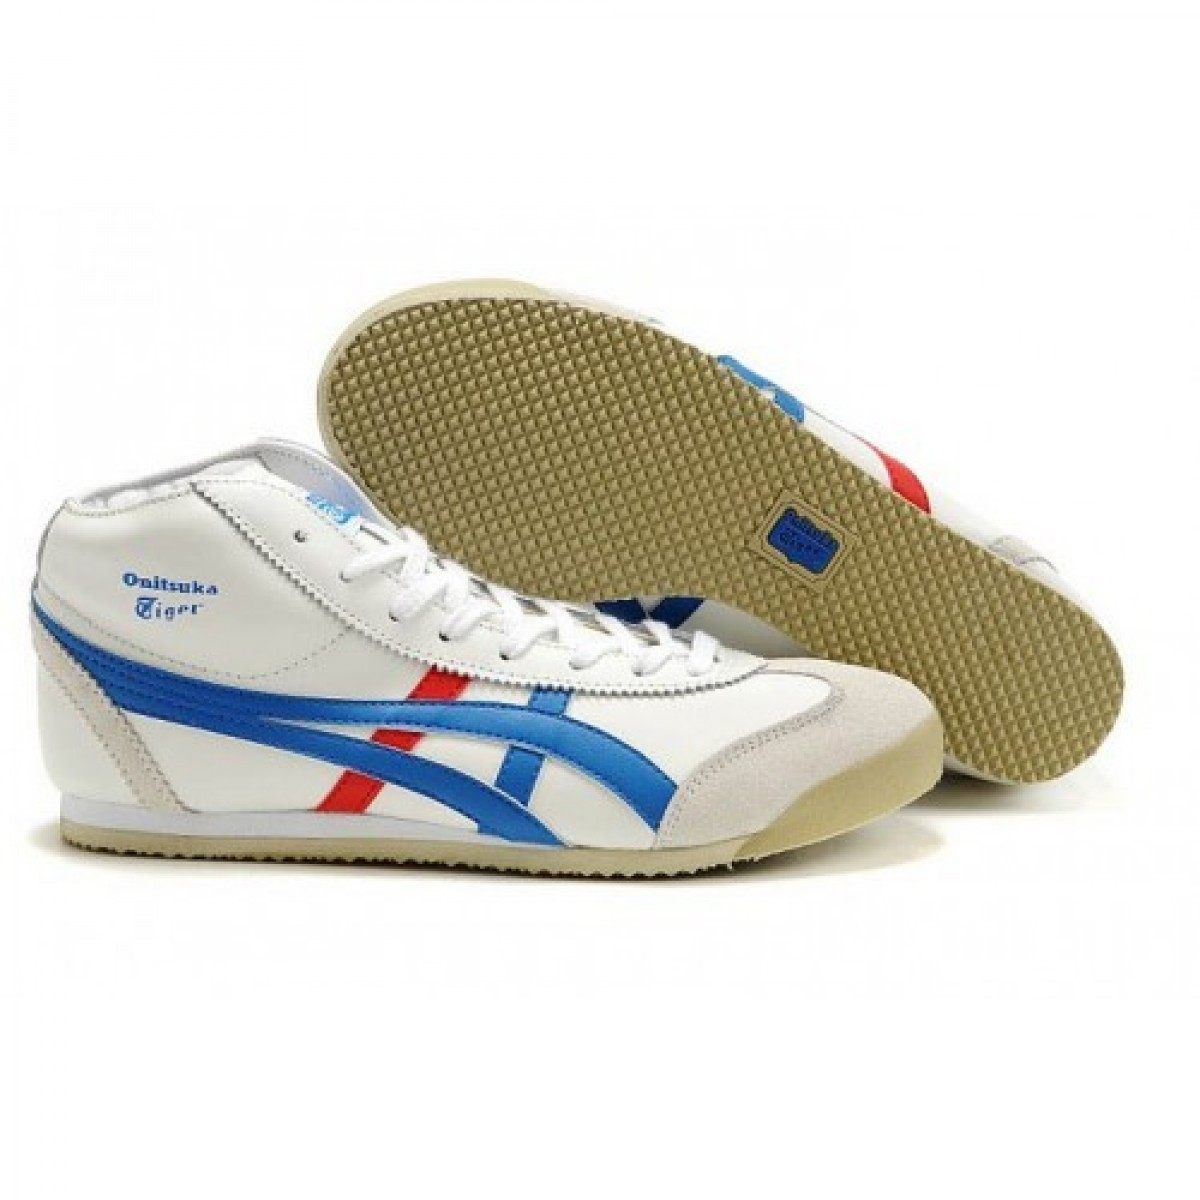 YD7749 Soldes Asics Onitsuka Tiger Mexico 66 Mid Femmes Runner Chaussures Blanc Bleu 16383666 Pas Cher